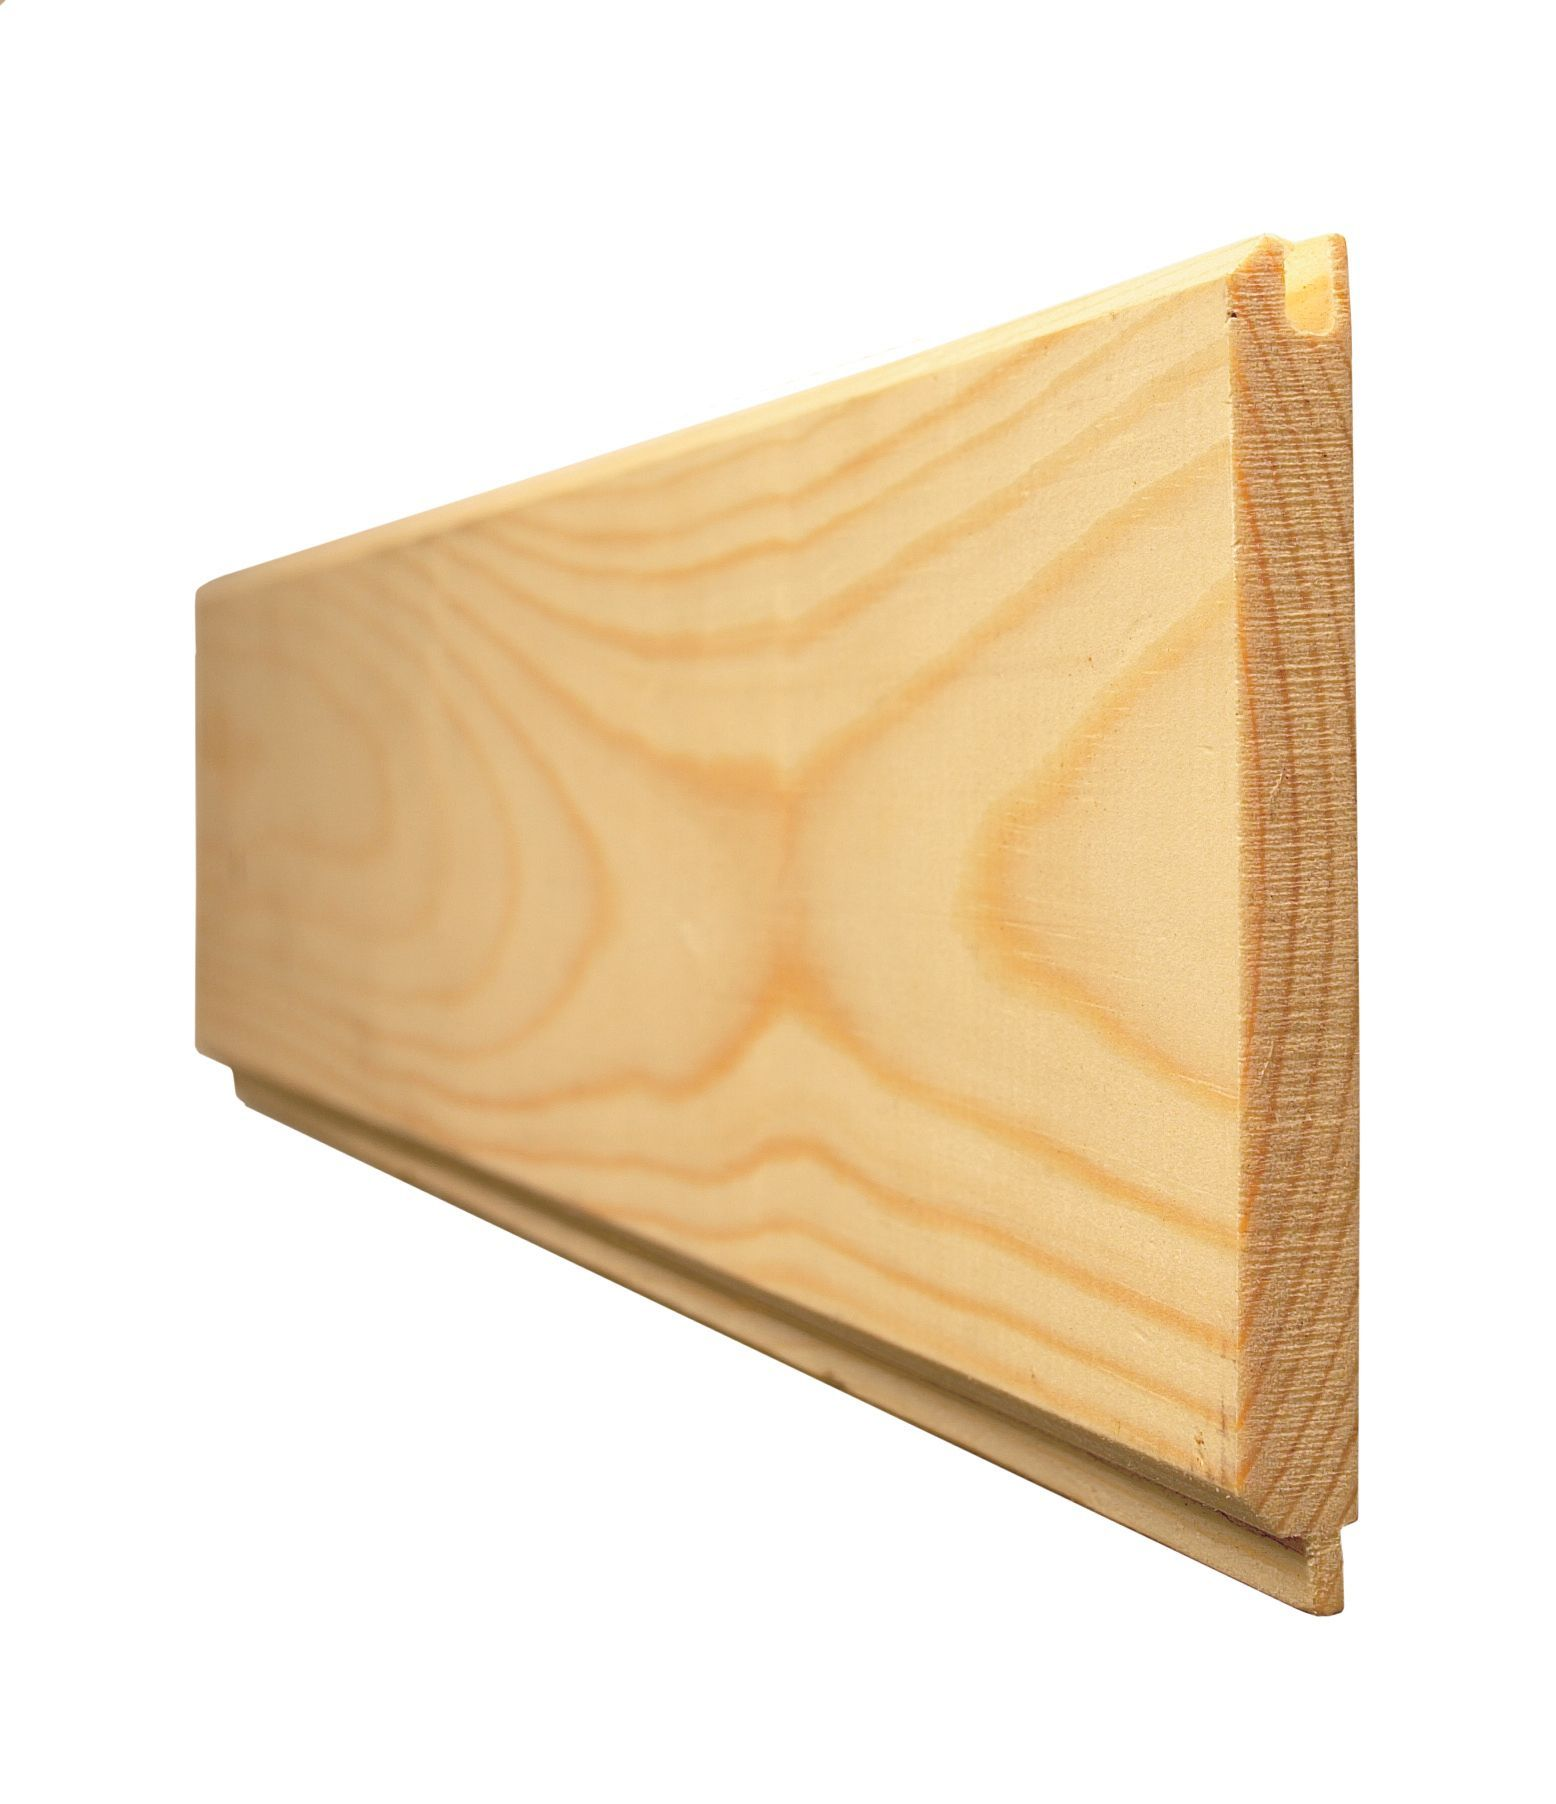 Redwood Standard Tongue Grooved Matchboard 12 5mm X 100mm Finished Size 8mm X 94mm Travis Tongue And Groove Cladding Tounge And Groove Tongue And Groove